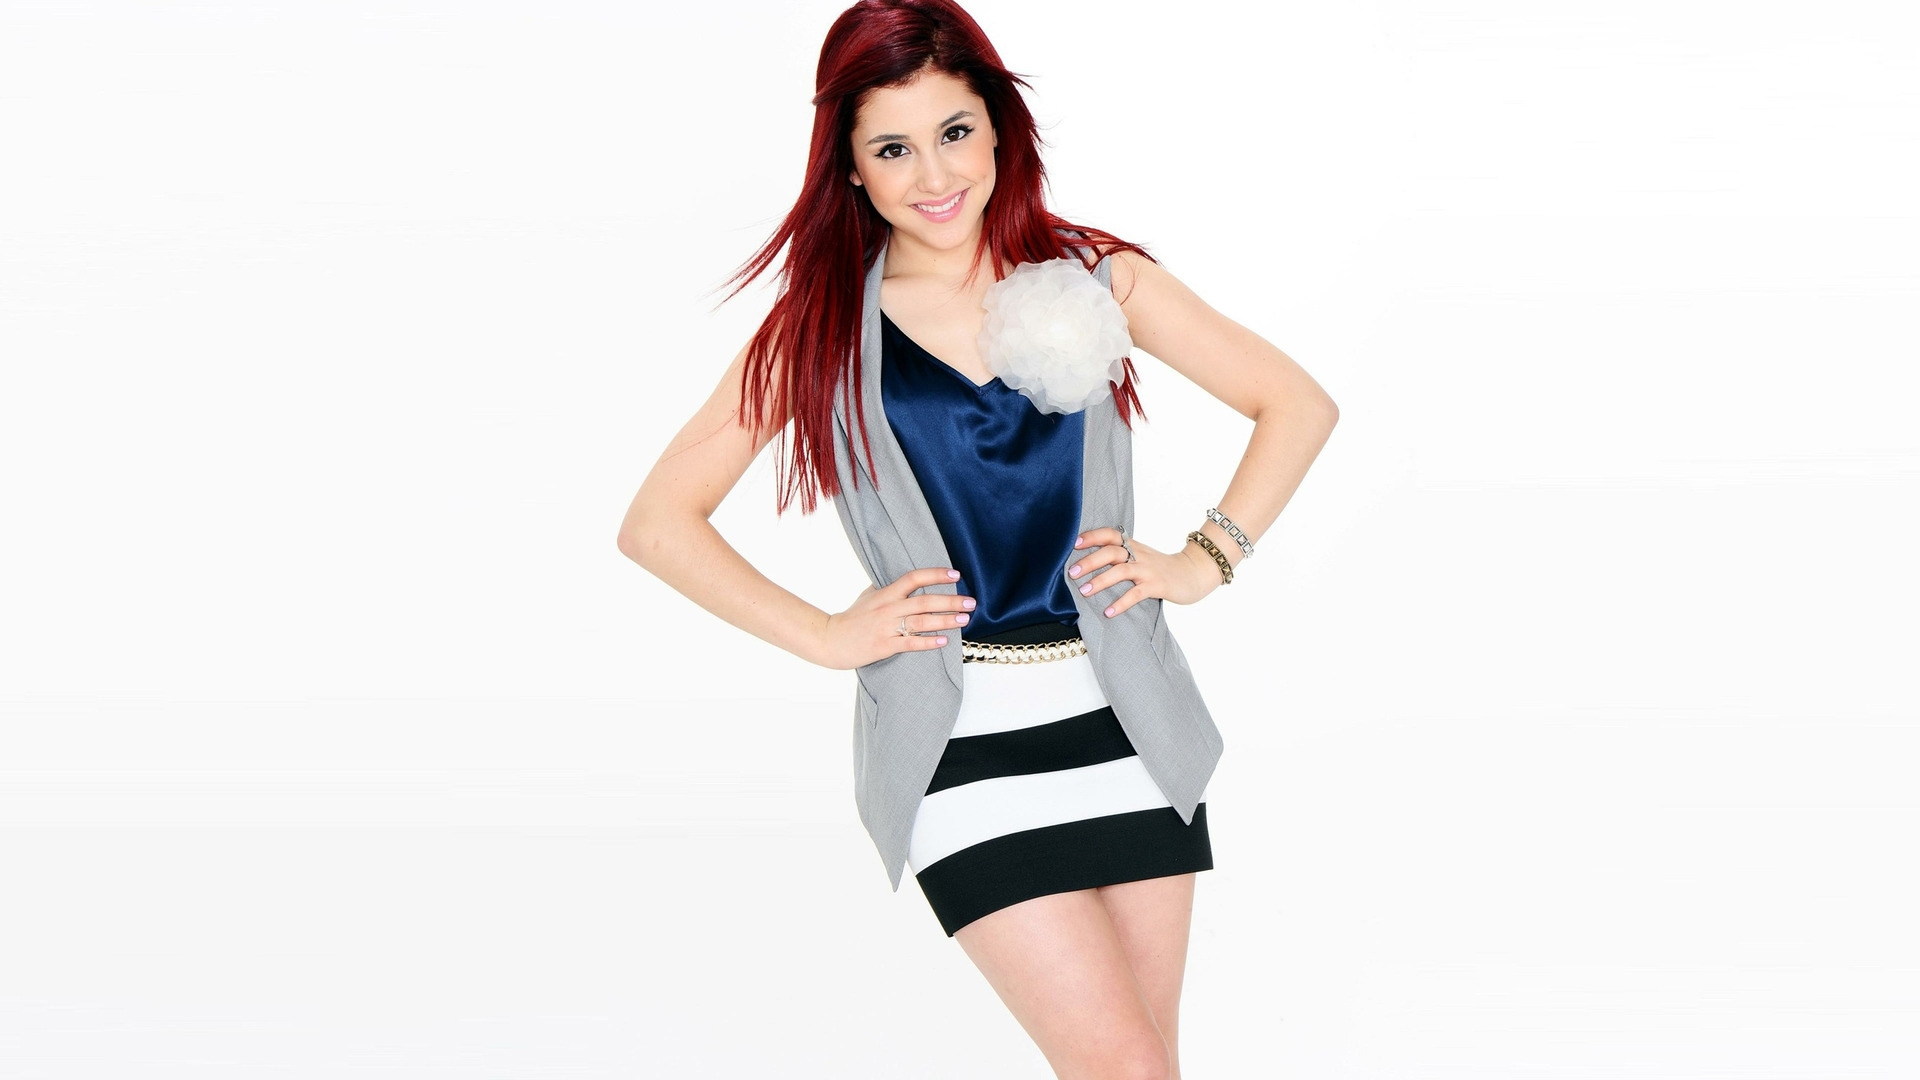 Ariana wallpapers photos and desktop backgrounds up to 8k ariana grande iphone 7986 wallpaper voltagebd Image collections